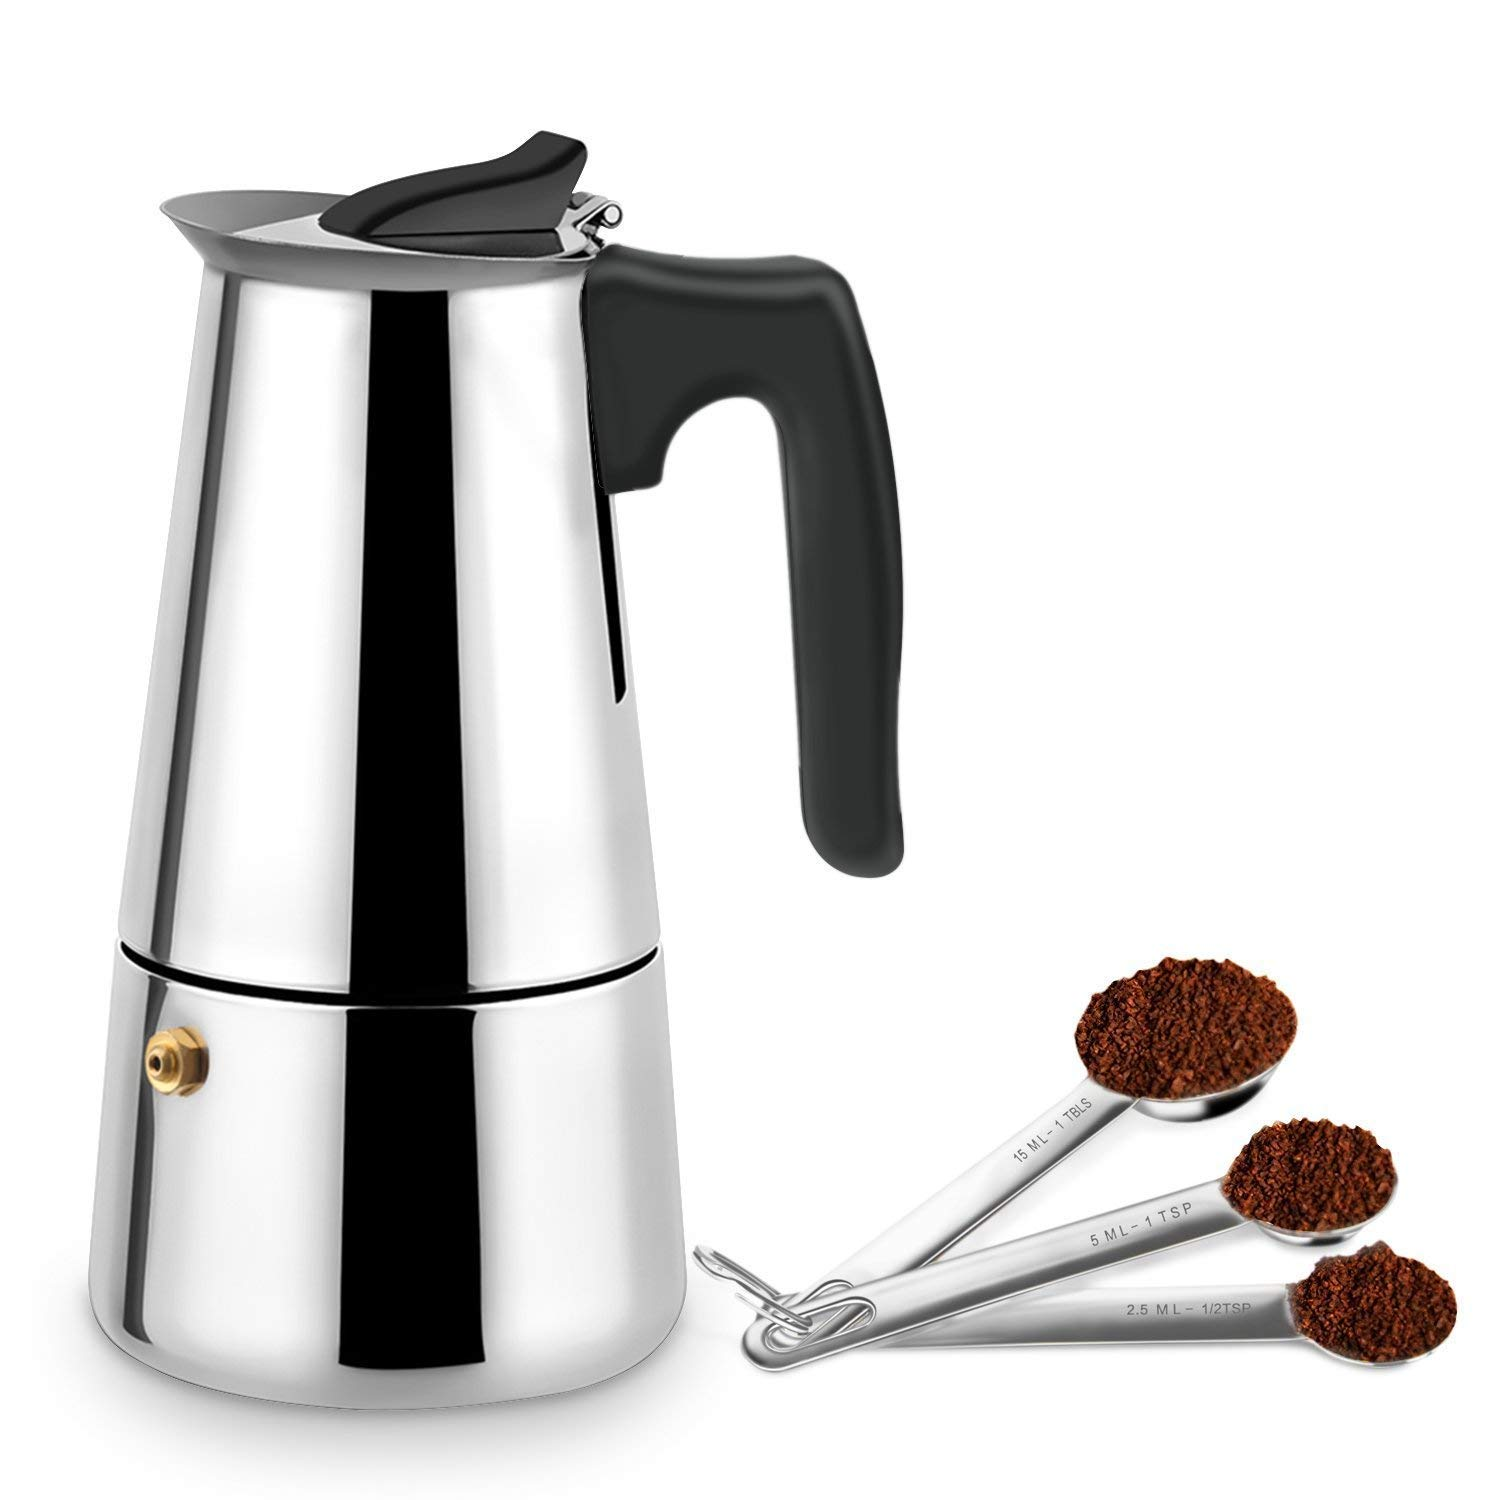 Stovetop Espresso Maker Stainless Steel Moka Pot Coffee Maker 9 Cup